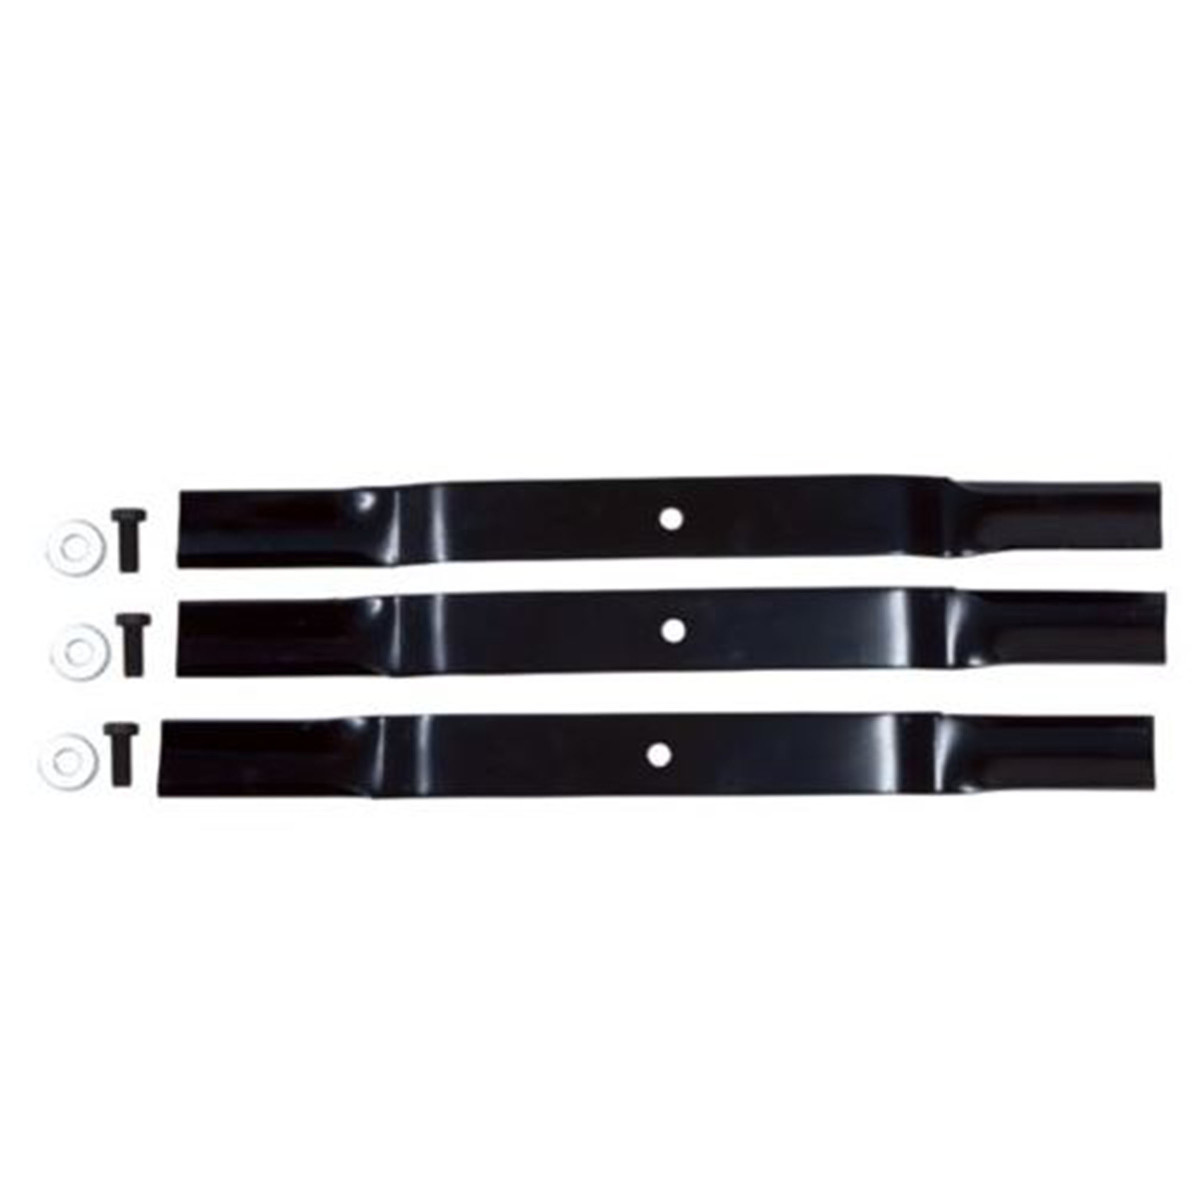 King Kutter Tiller Replacement Parts : King kutter replacement blade set for ′ finish mower